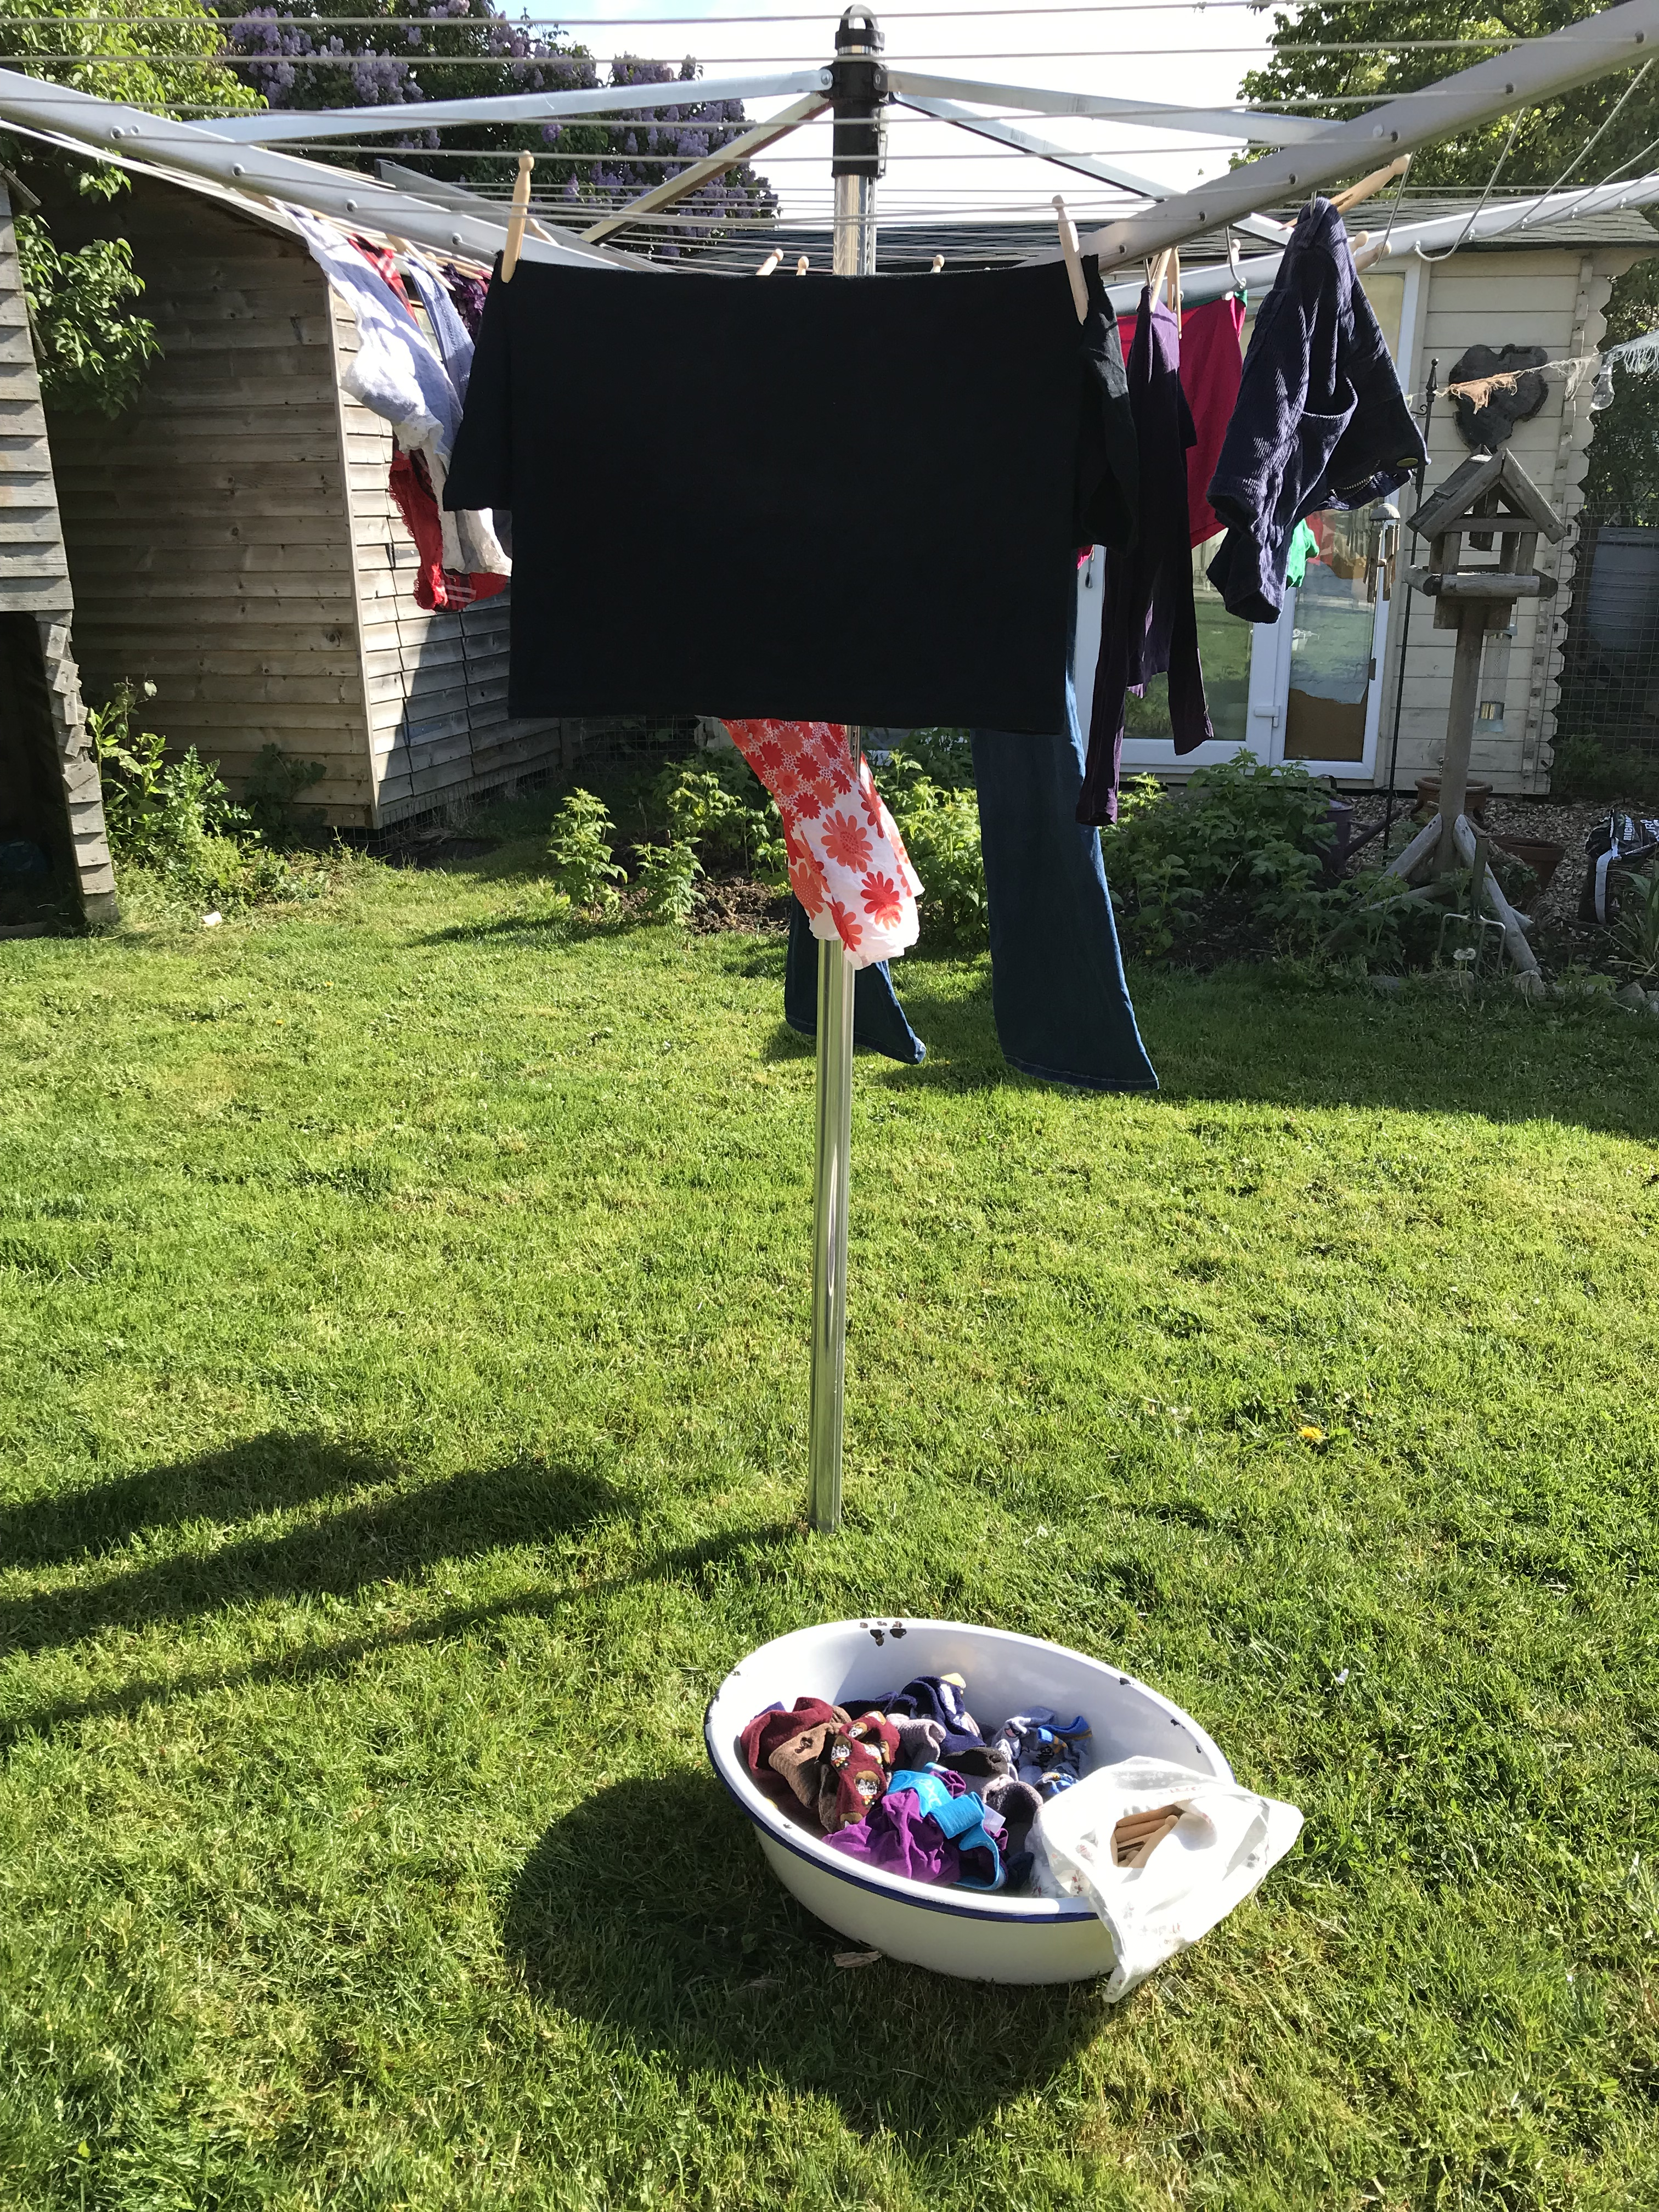 Handmade haven laundry day using enamel baby bath which was my nans baby bath, wooden pegs in a handmade peg bag.